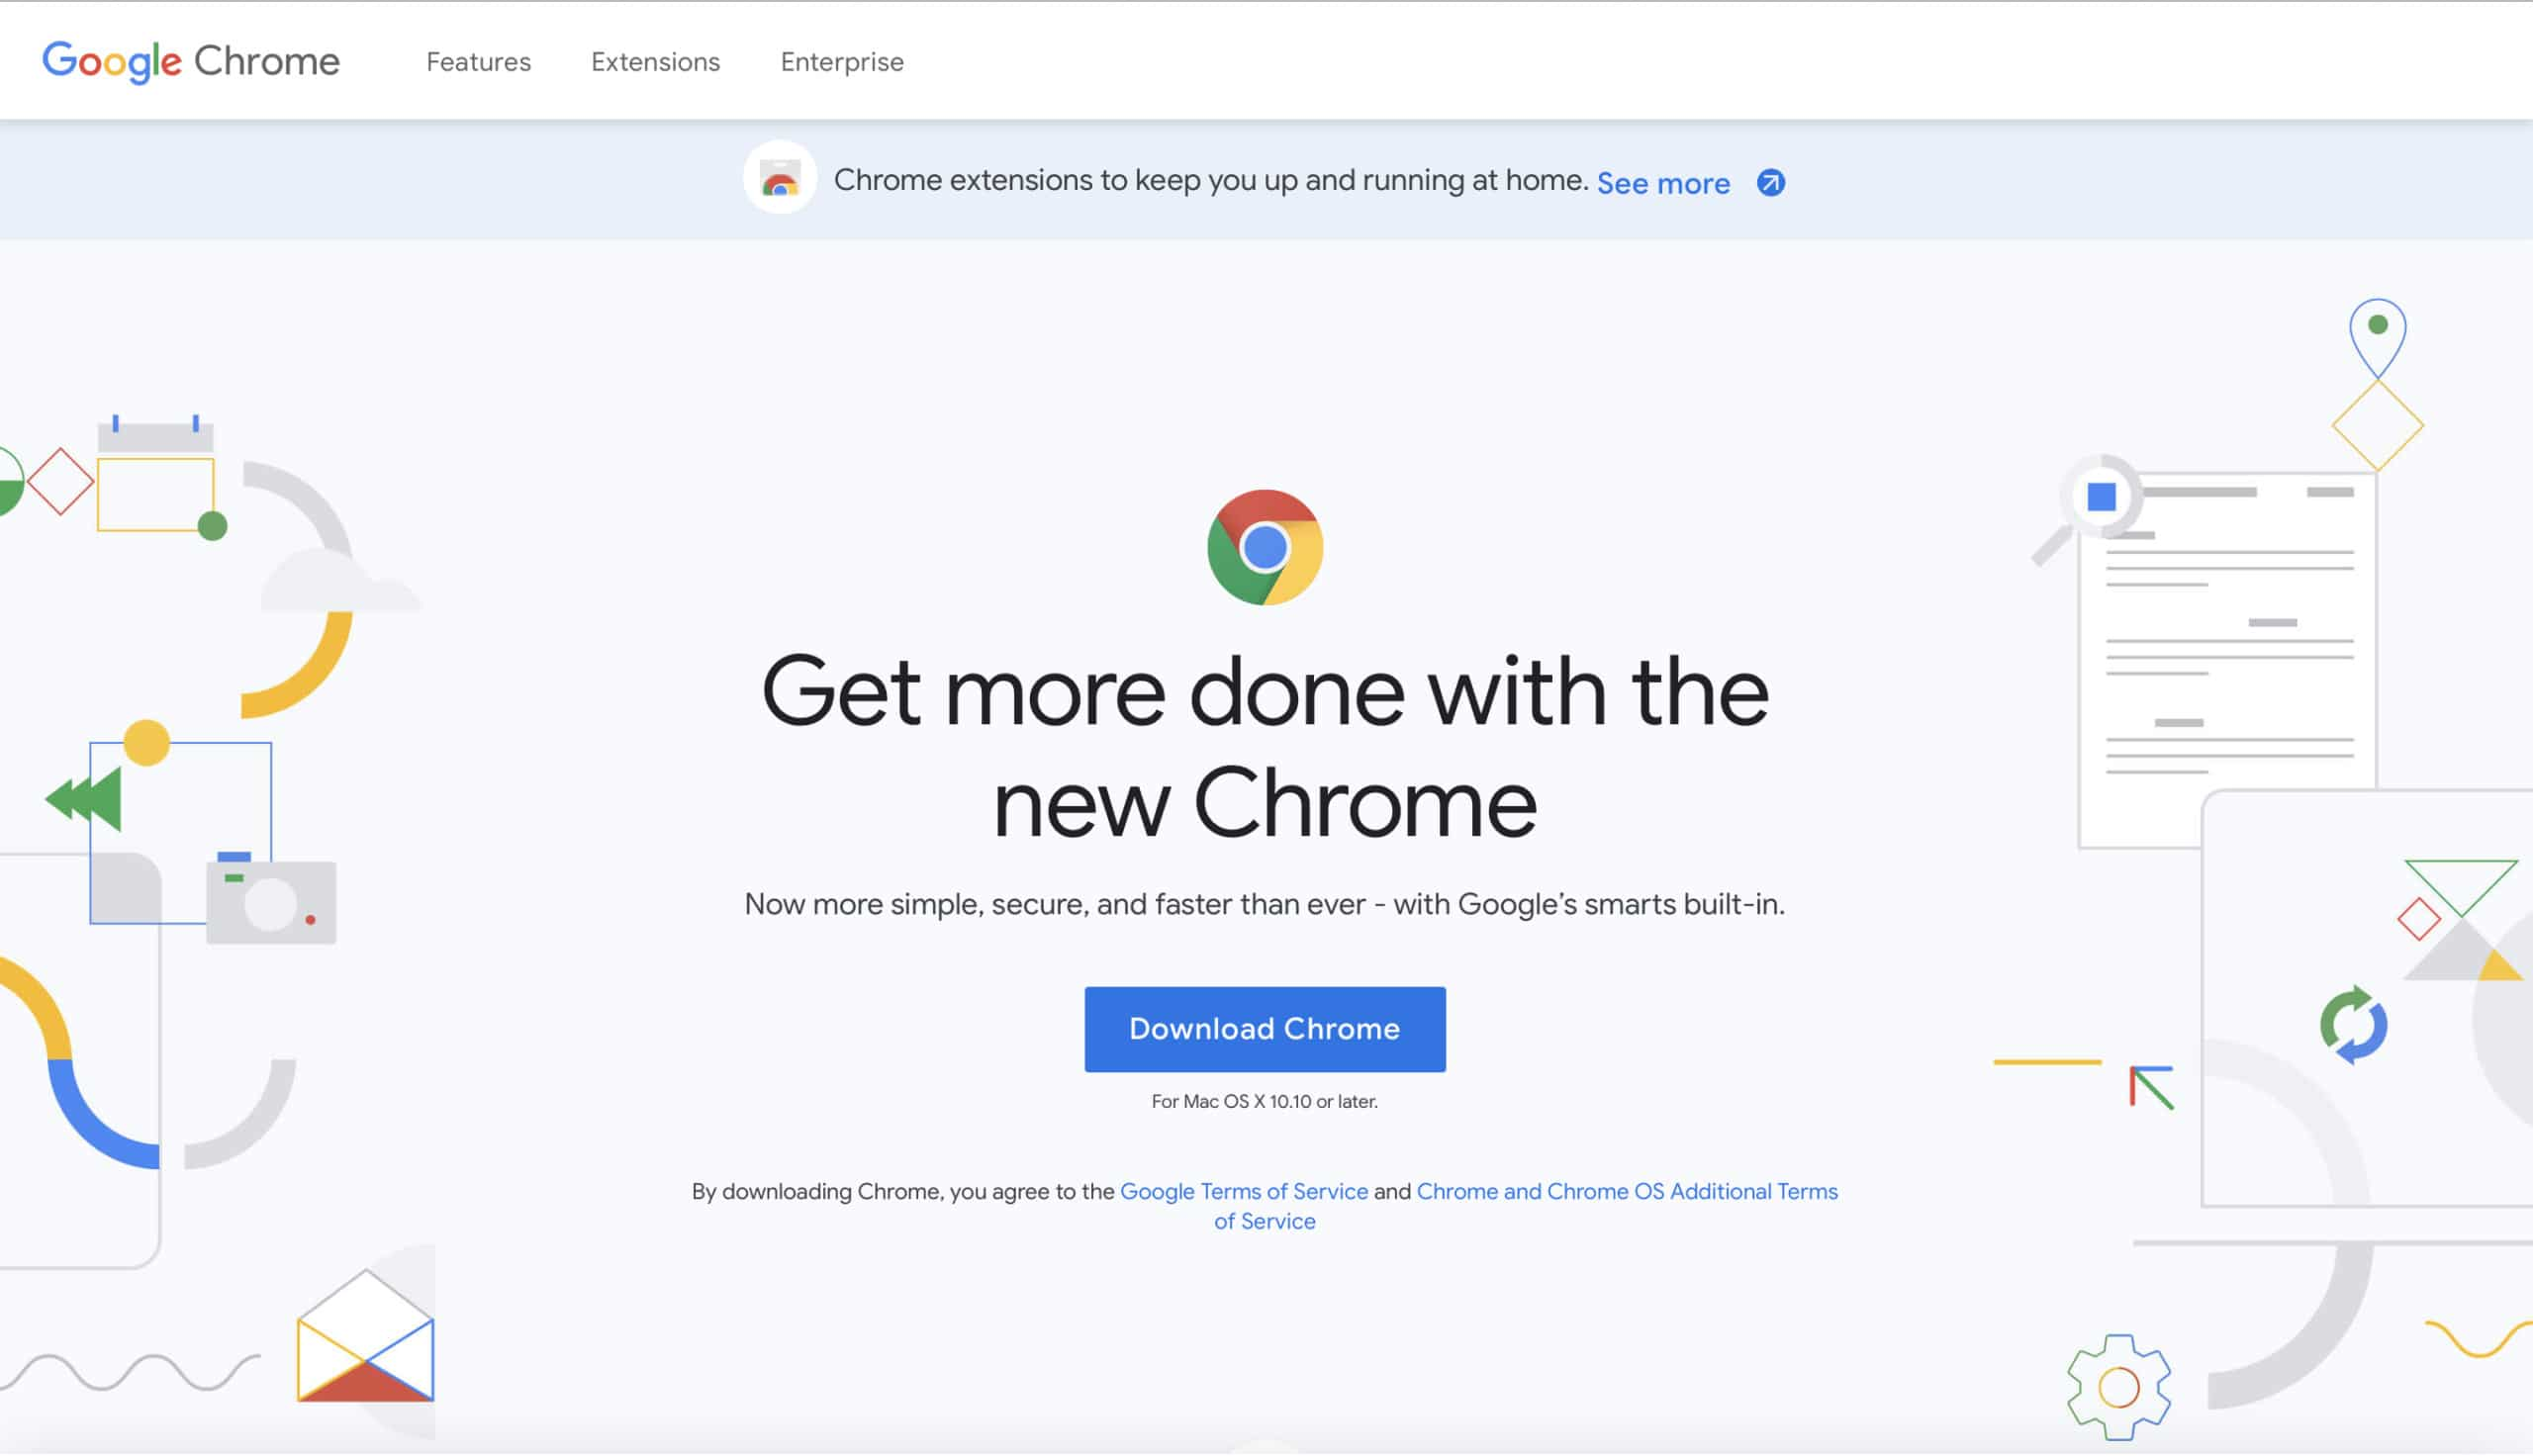 Does Chrome Keep logging you out?